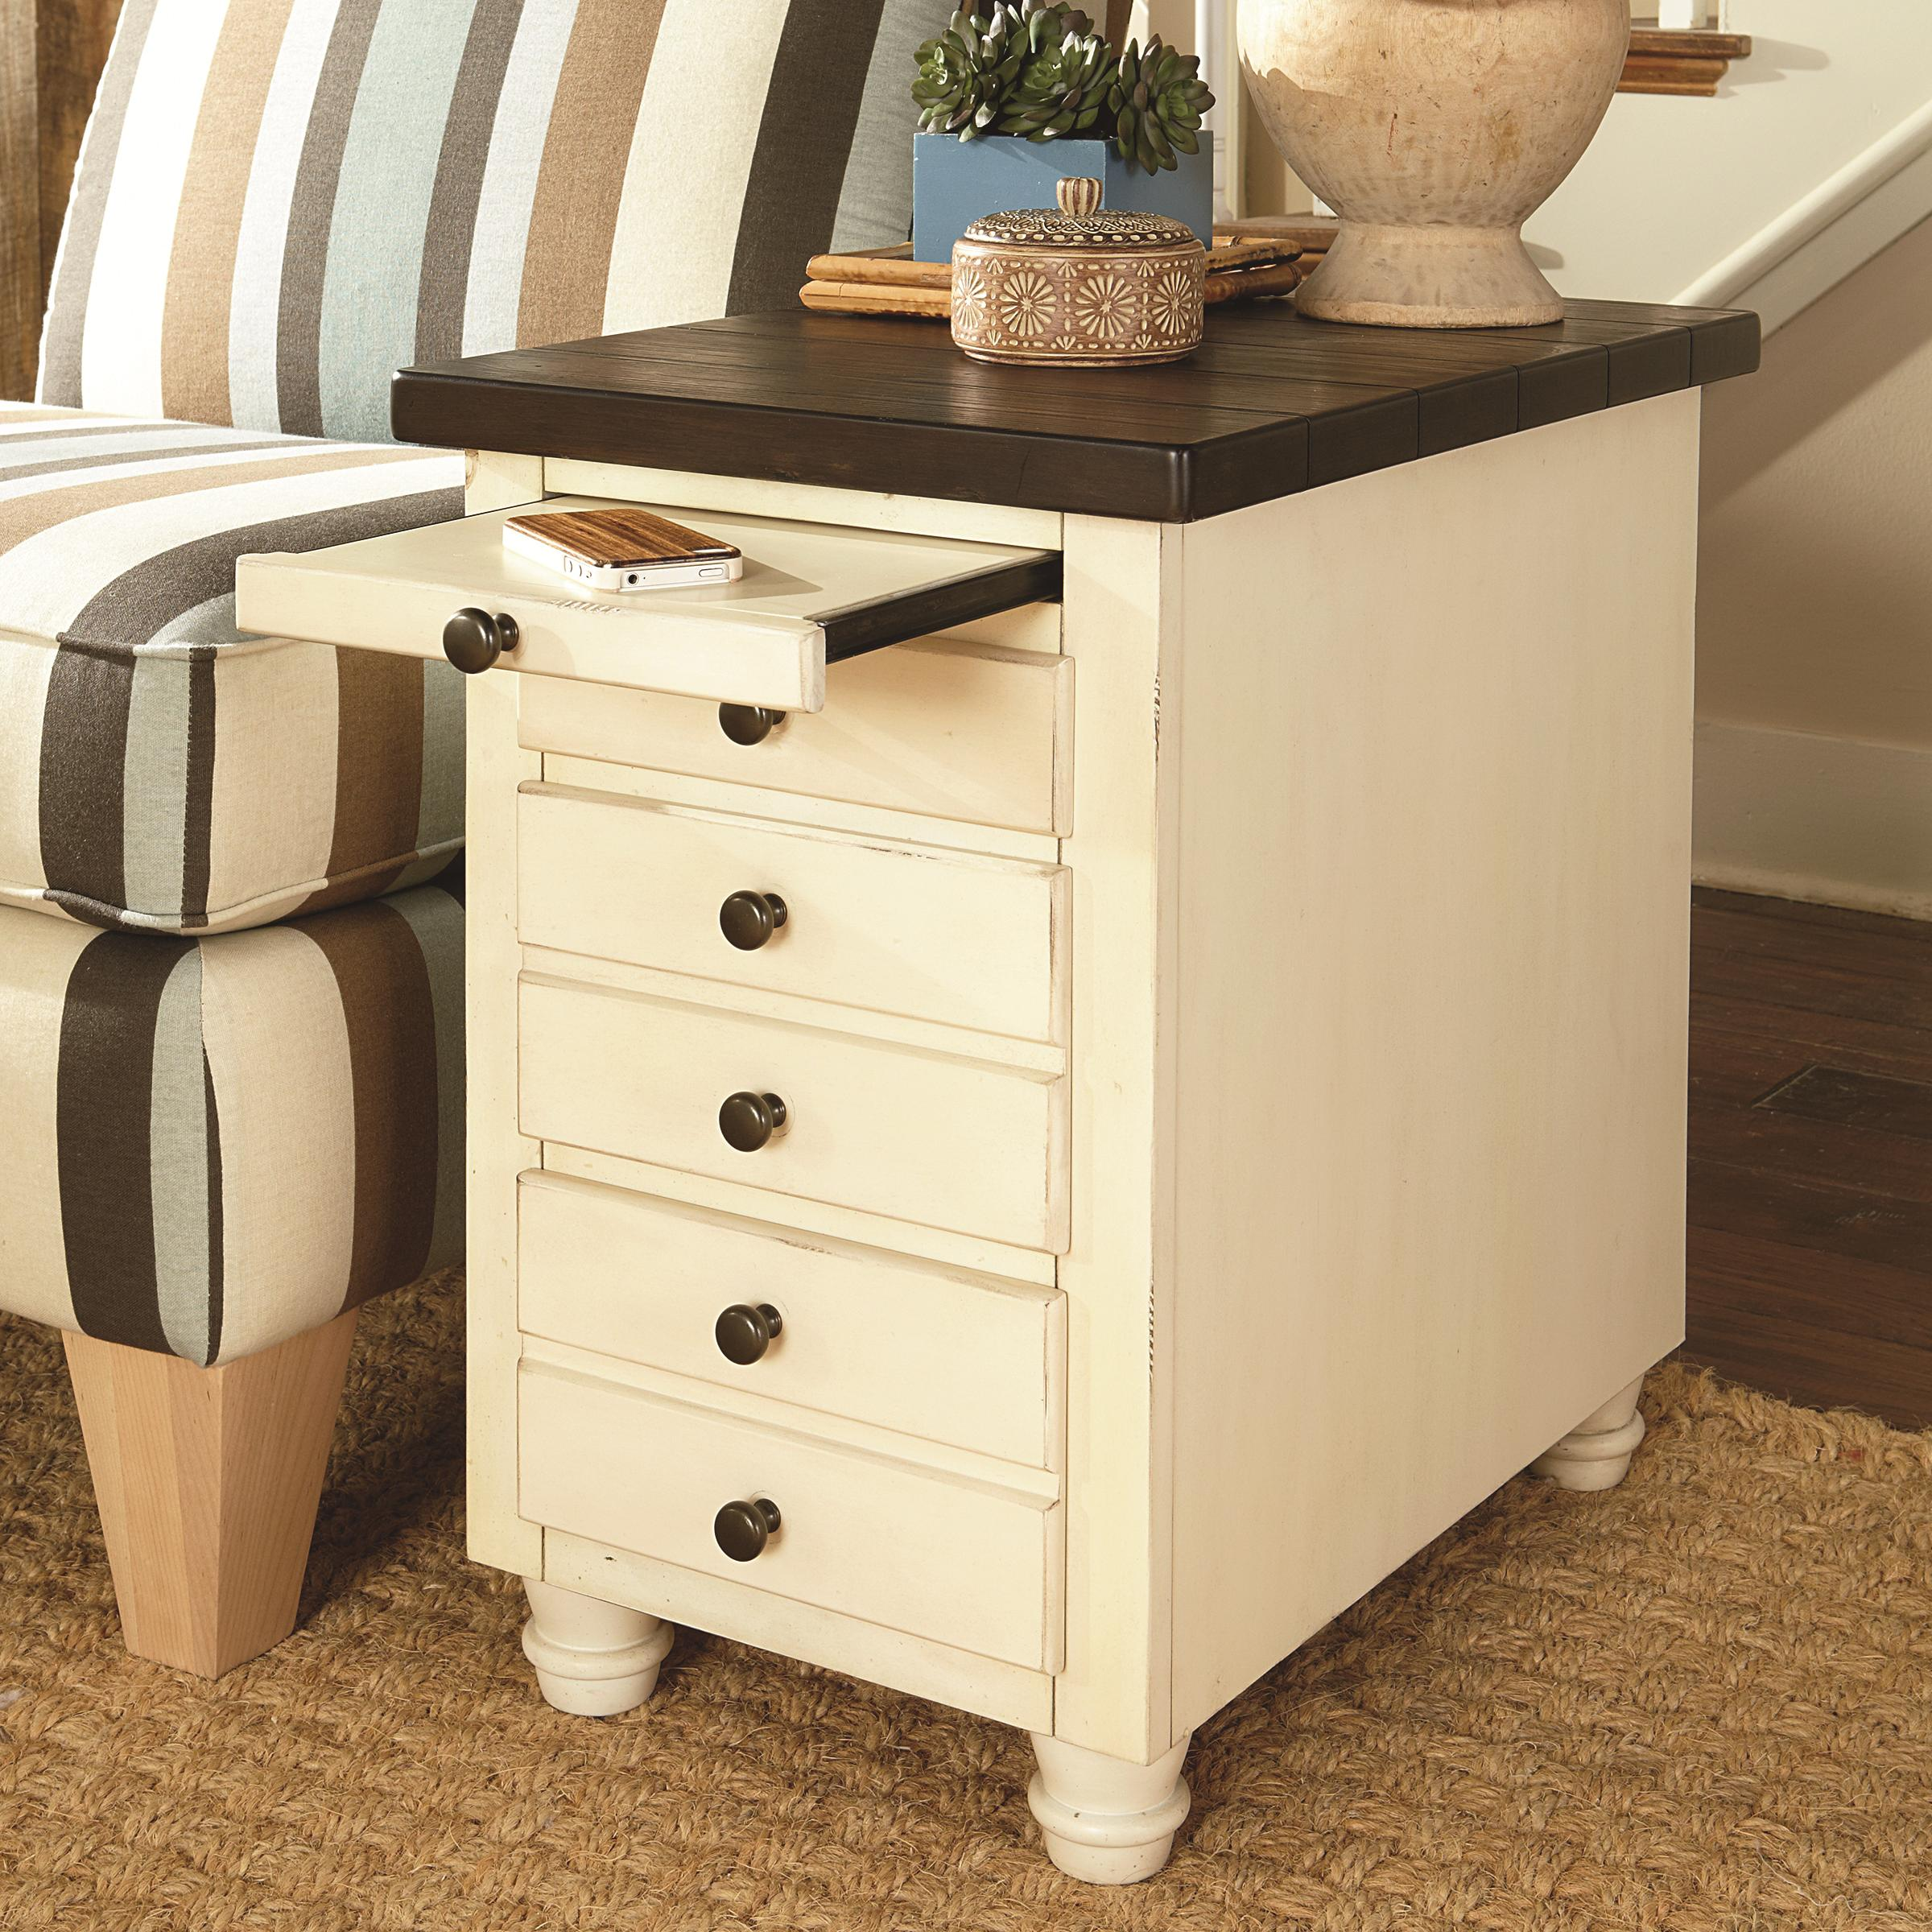 Chairside Table Chest with 3 Drawers and 1 Pull Out Shelf